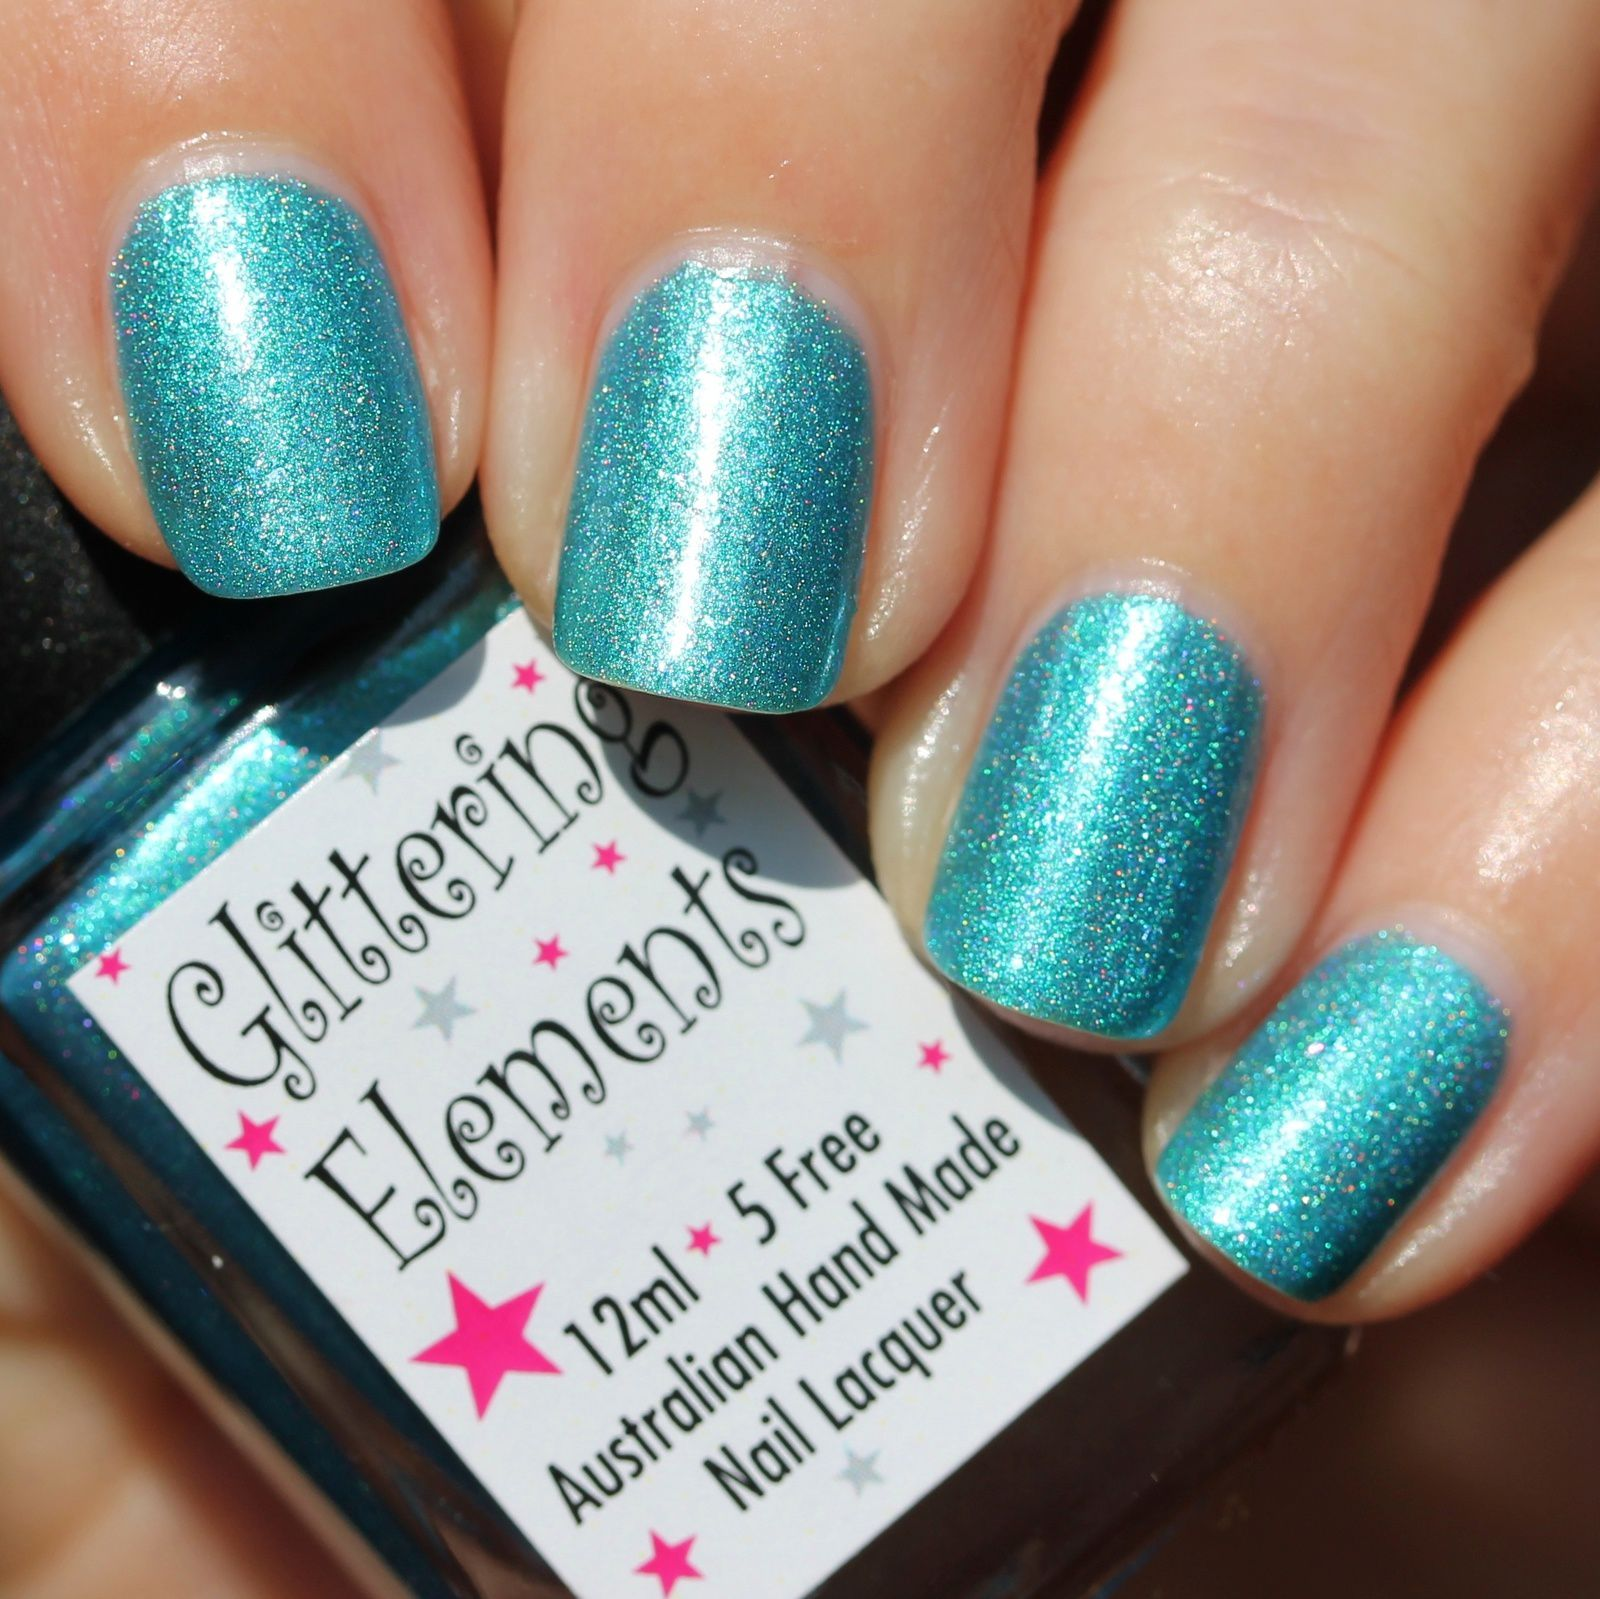 Glittering Elements Christmas in Paradise (3 coats, no top coat)